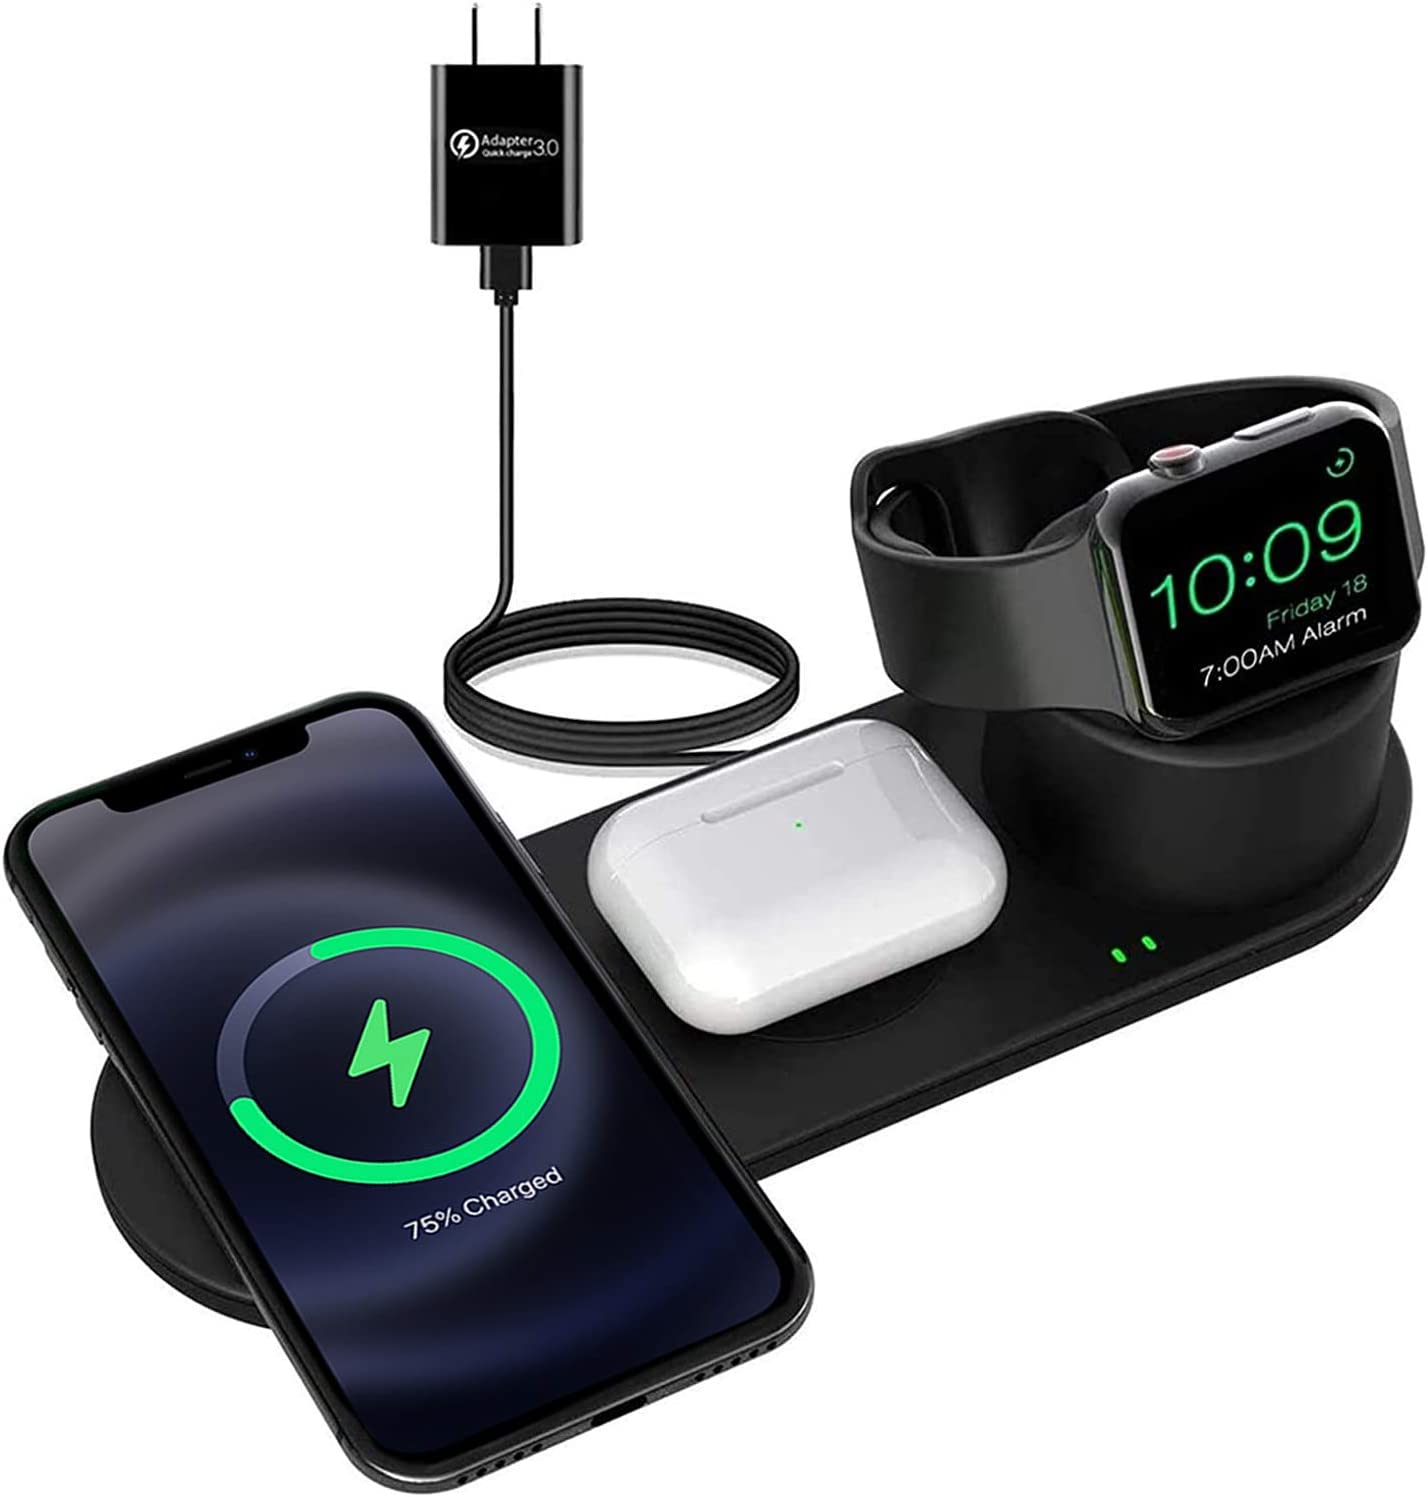 Popular standard Aresh 3 in 1 Wireless Charging Apple Compatible Station SALENEW very popular! Pro with